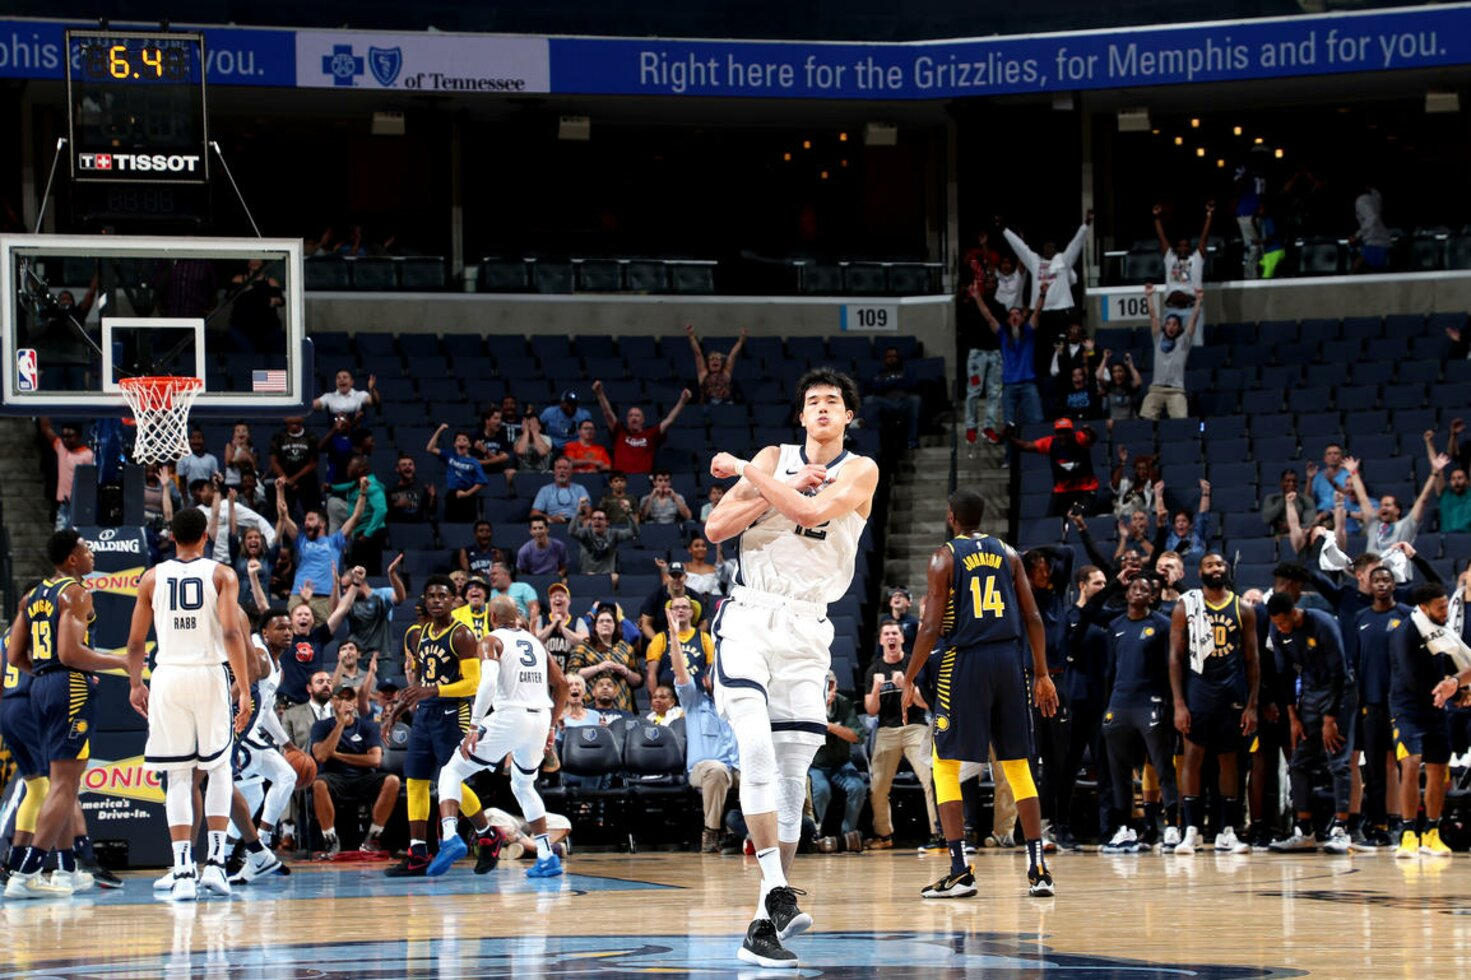 MEMPHIS, TN - OCTOBER 6: Yuta Watanabe #12 of the Memphis Grizzlies reacts against the Indiana Pacers during a pre-season game on October 6, 2018 at FedExForum in Memphis, Tennessee.